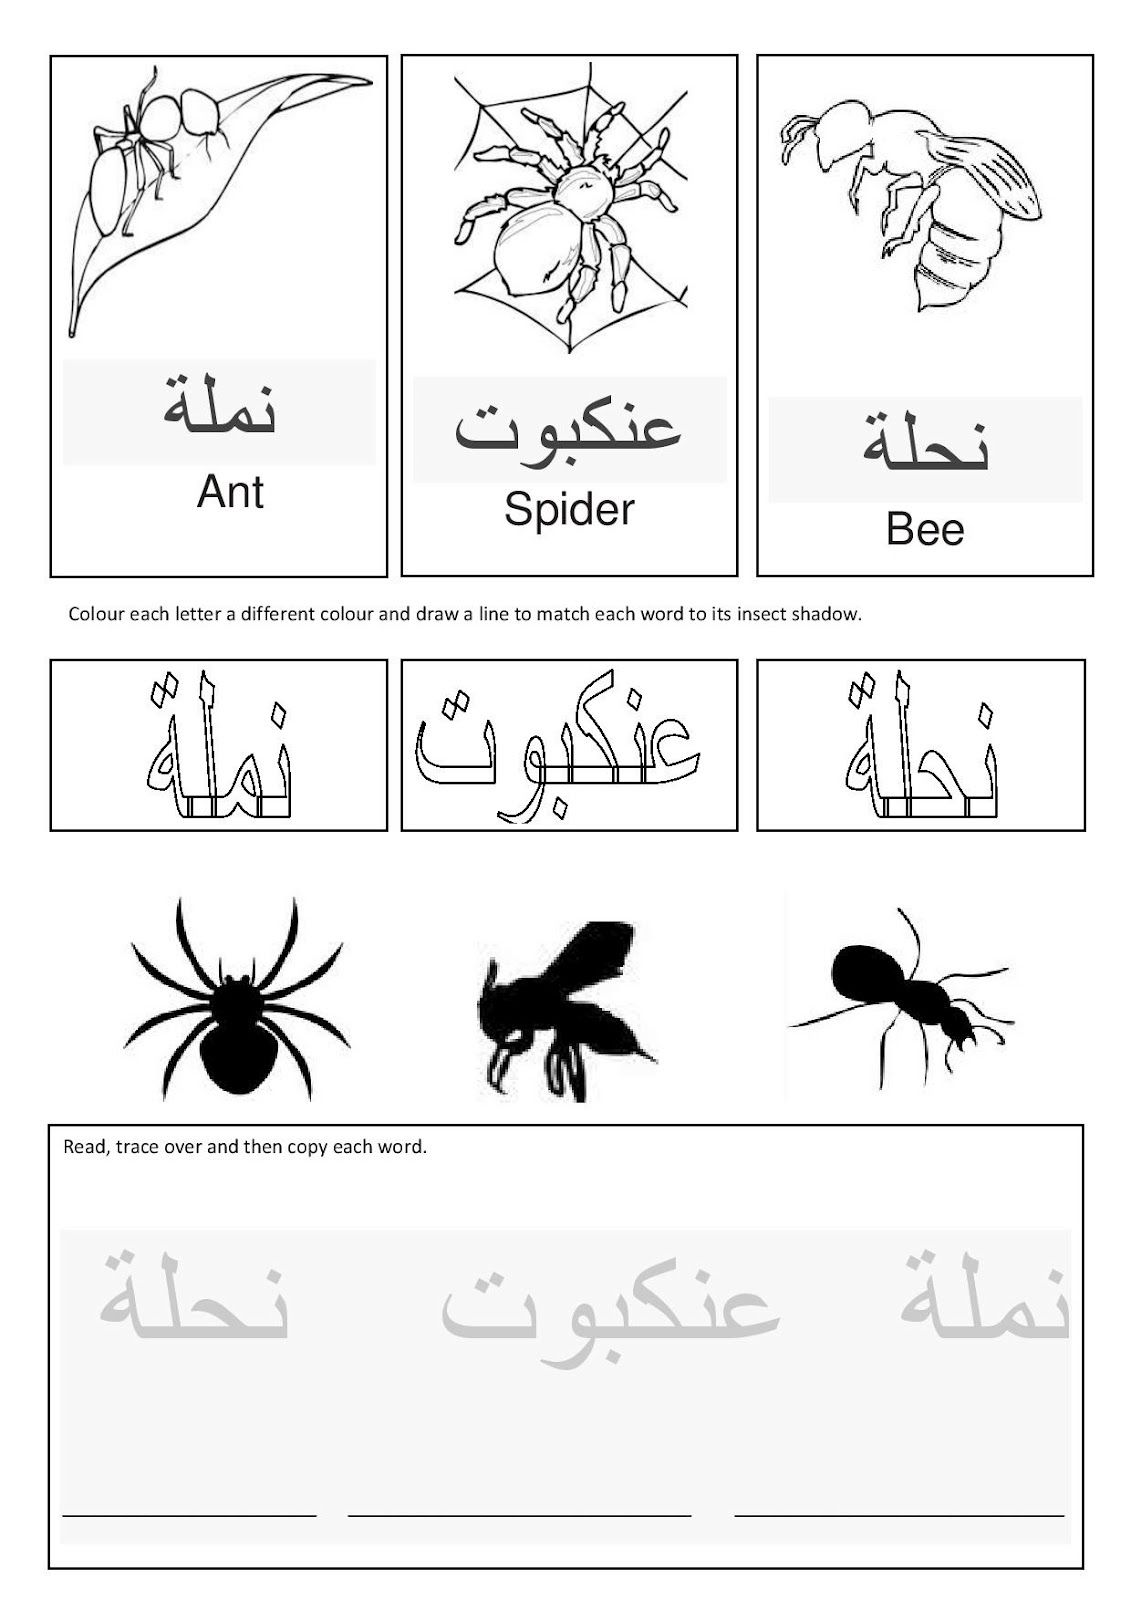 arabic insects arabic homeschool learning arabic learn arabic alphabet learn arabic online. Black Bedroom Furniture Sets. Home Design Ideas